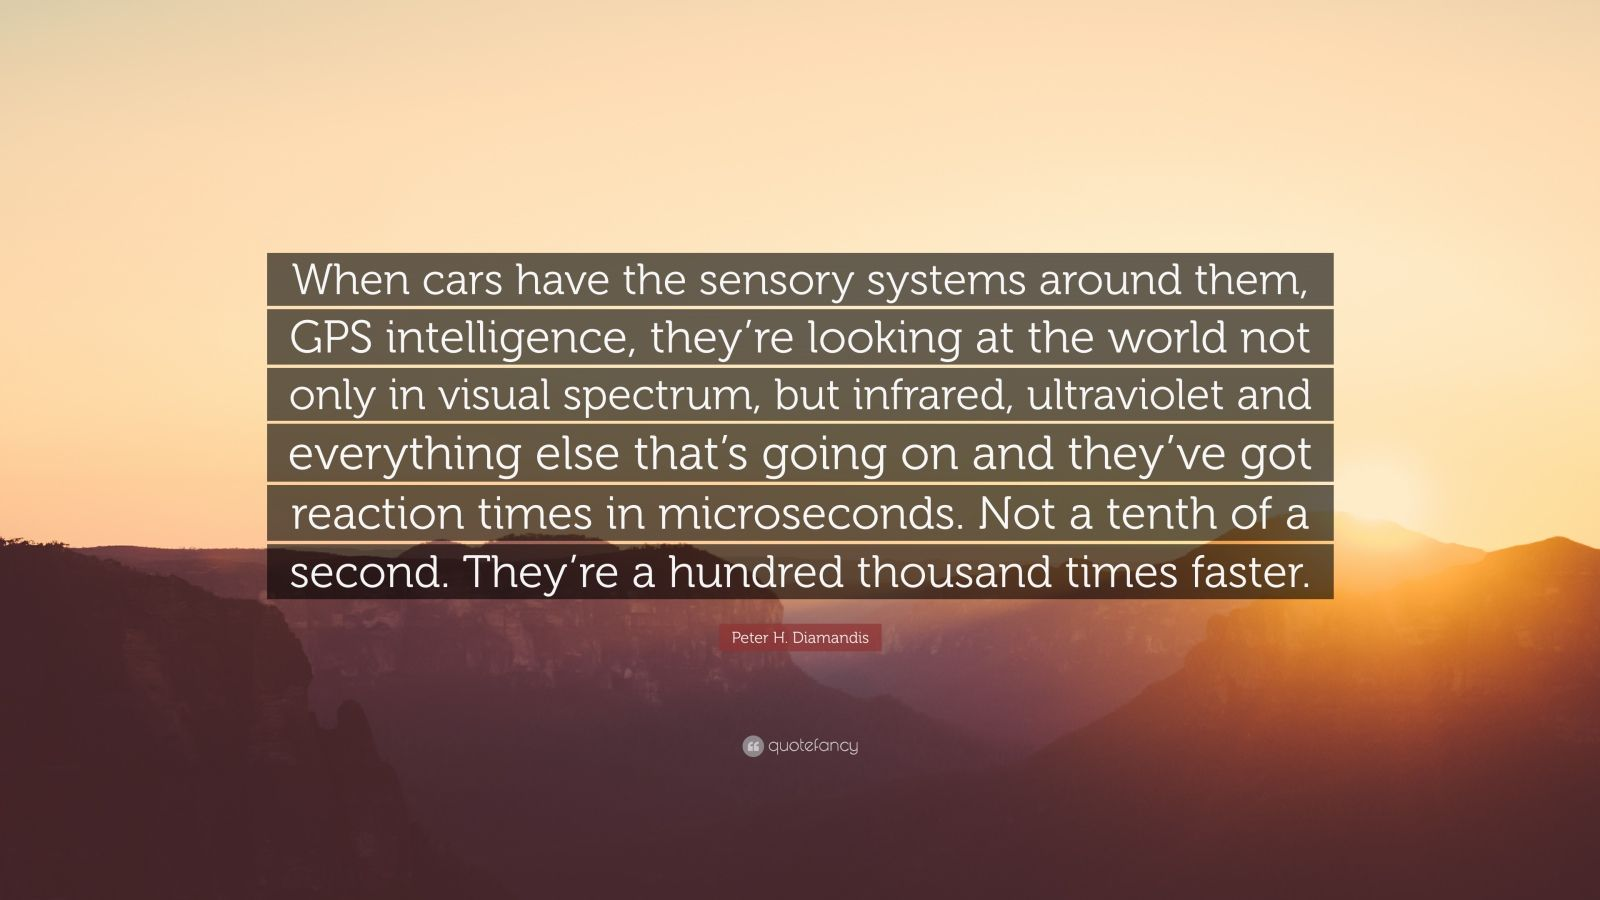 """Peter H. Diamandis Quote: """"When cars have the sensory systems around them, GPS intelligence, they're looking at the world not only in visual spectrum, but infrared, ultraviolet and everything else that's going on and they've got reaction times in microseconds. Not a tenth of a second. They're a hundred thousand times faster."""""""